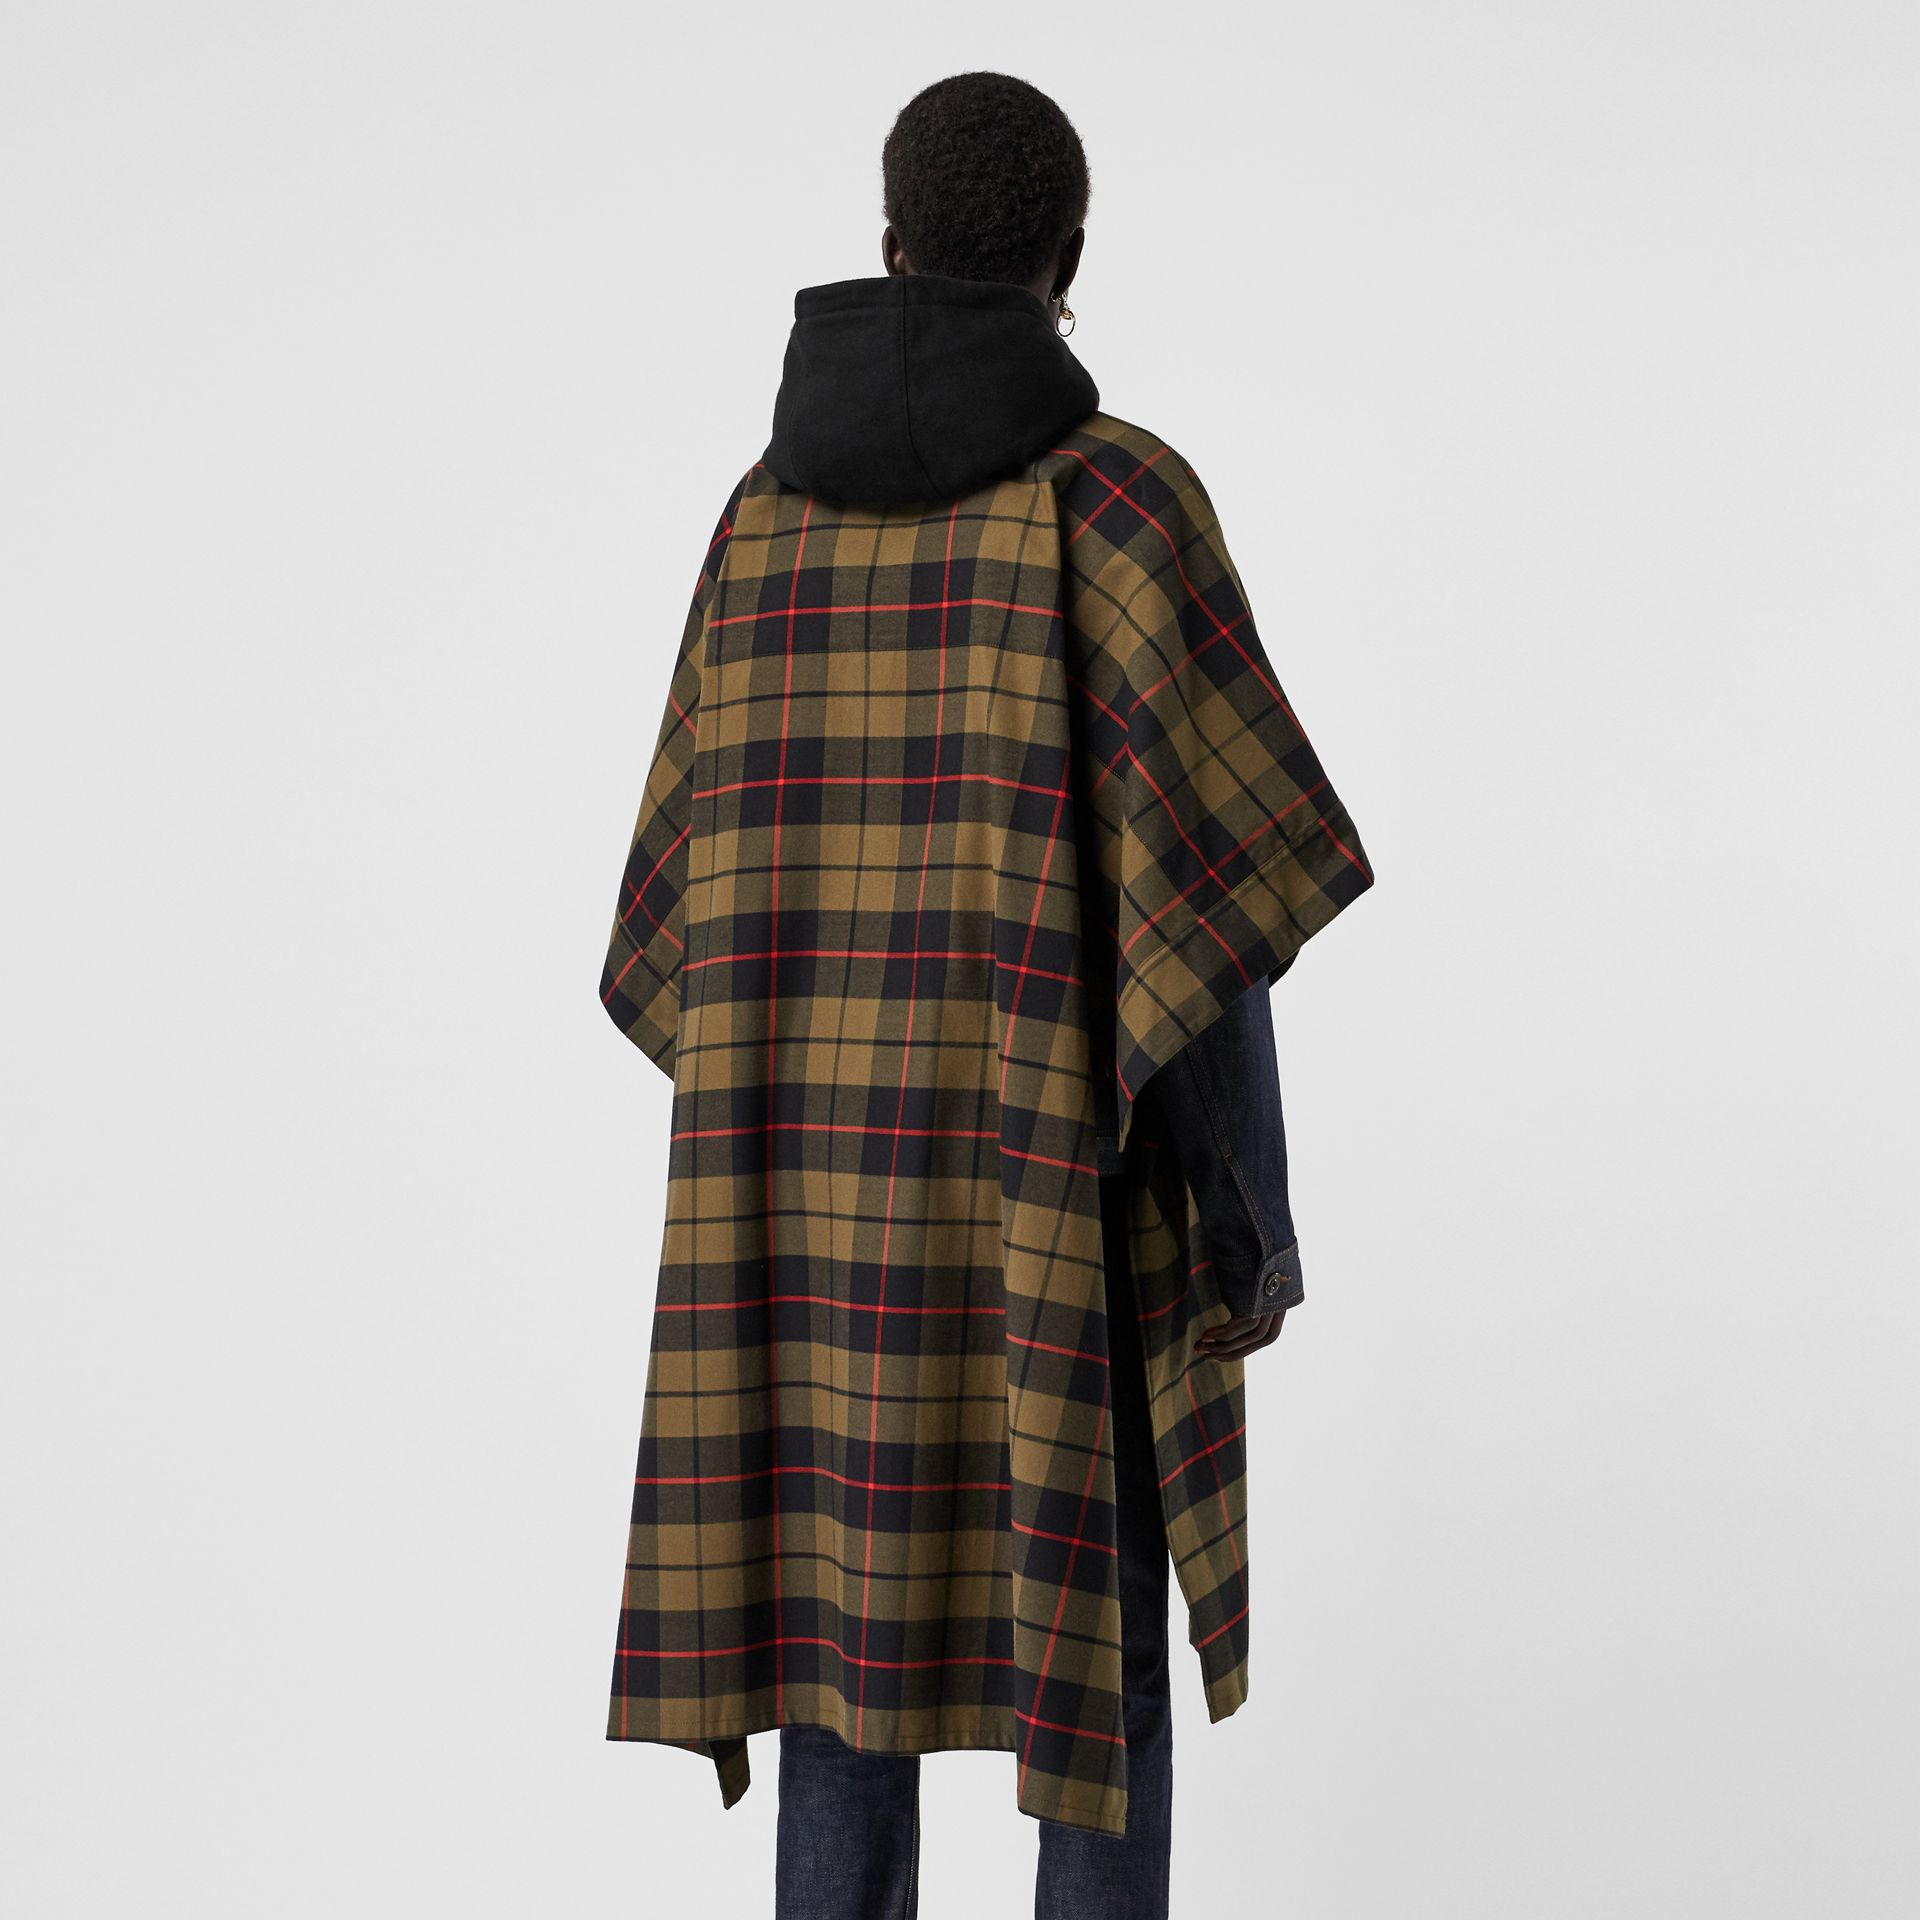 Monogram Motif Check Cotton Oversized Poncho in Military Olive | Burberry - gallery image 6